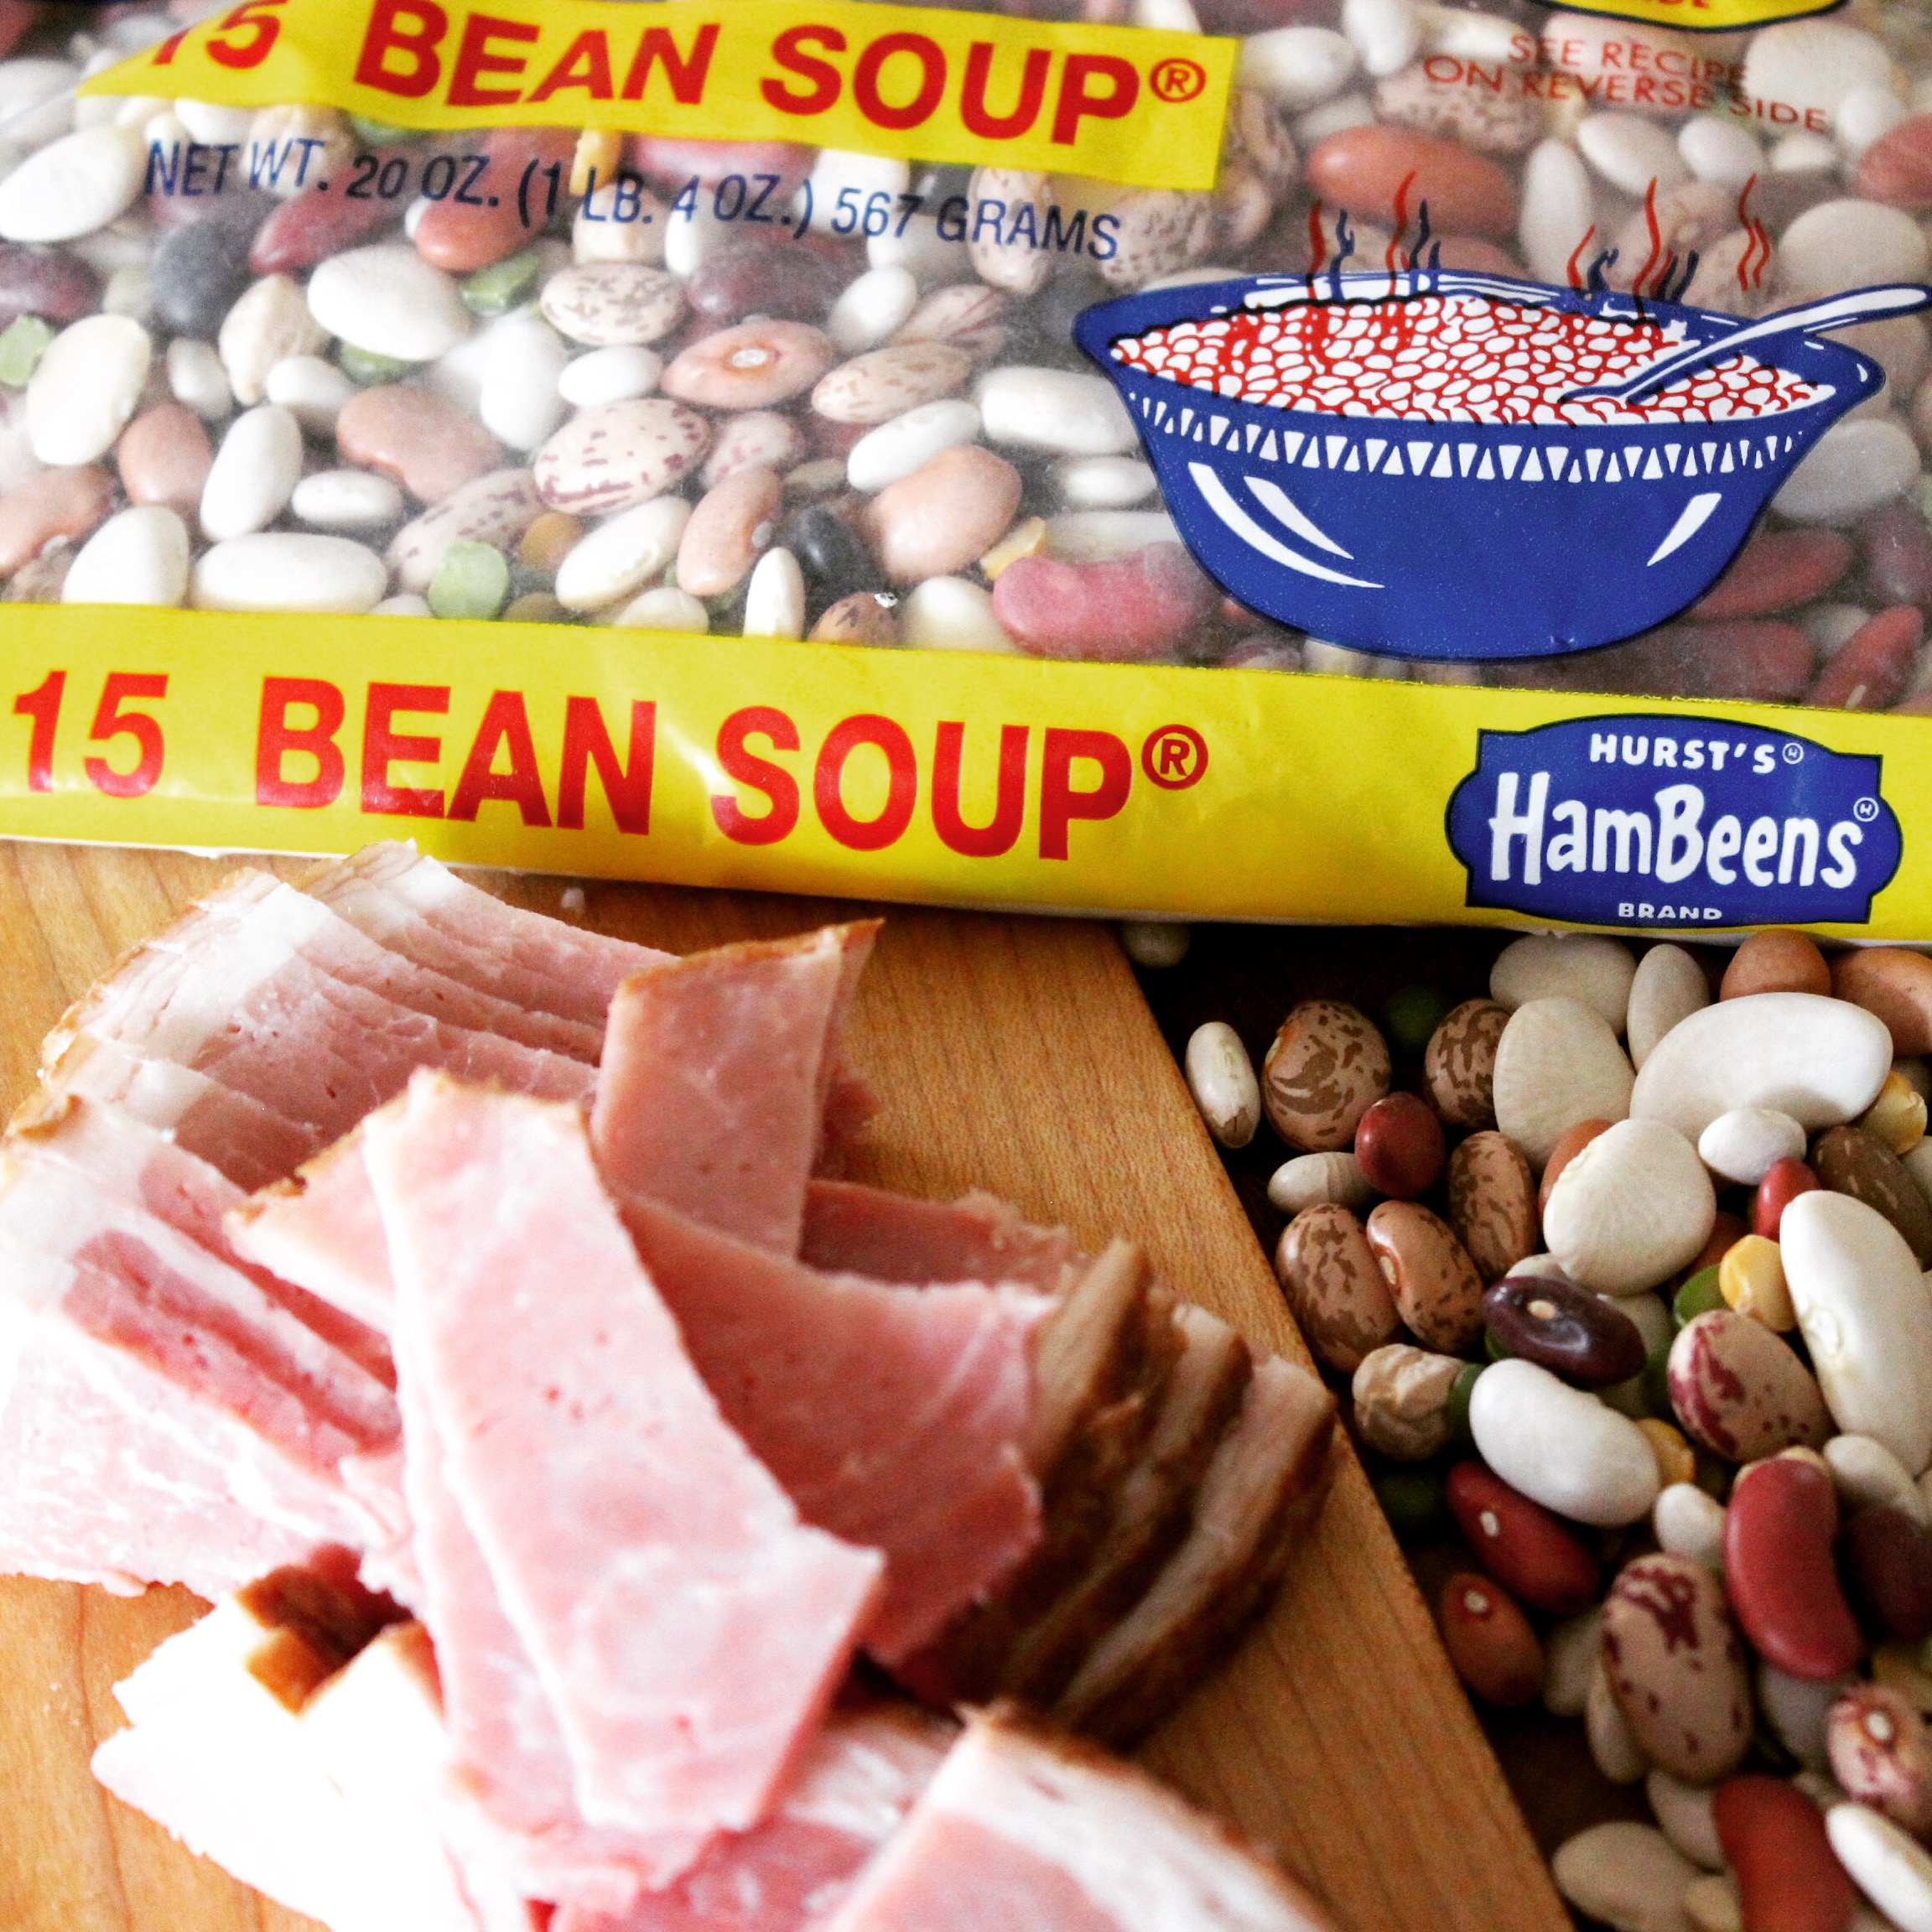 What is a quick recipe for making ham and beans in a crock pot?